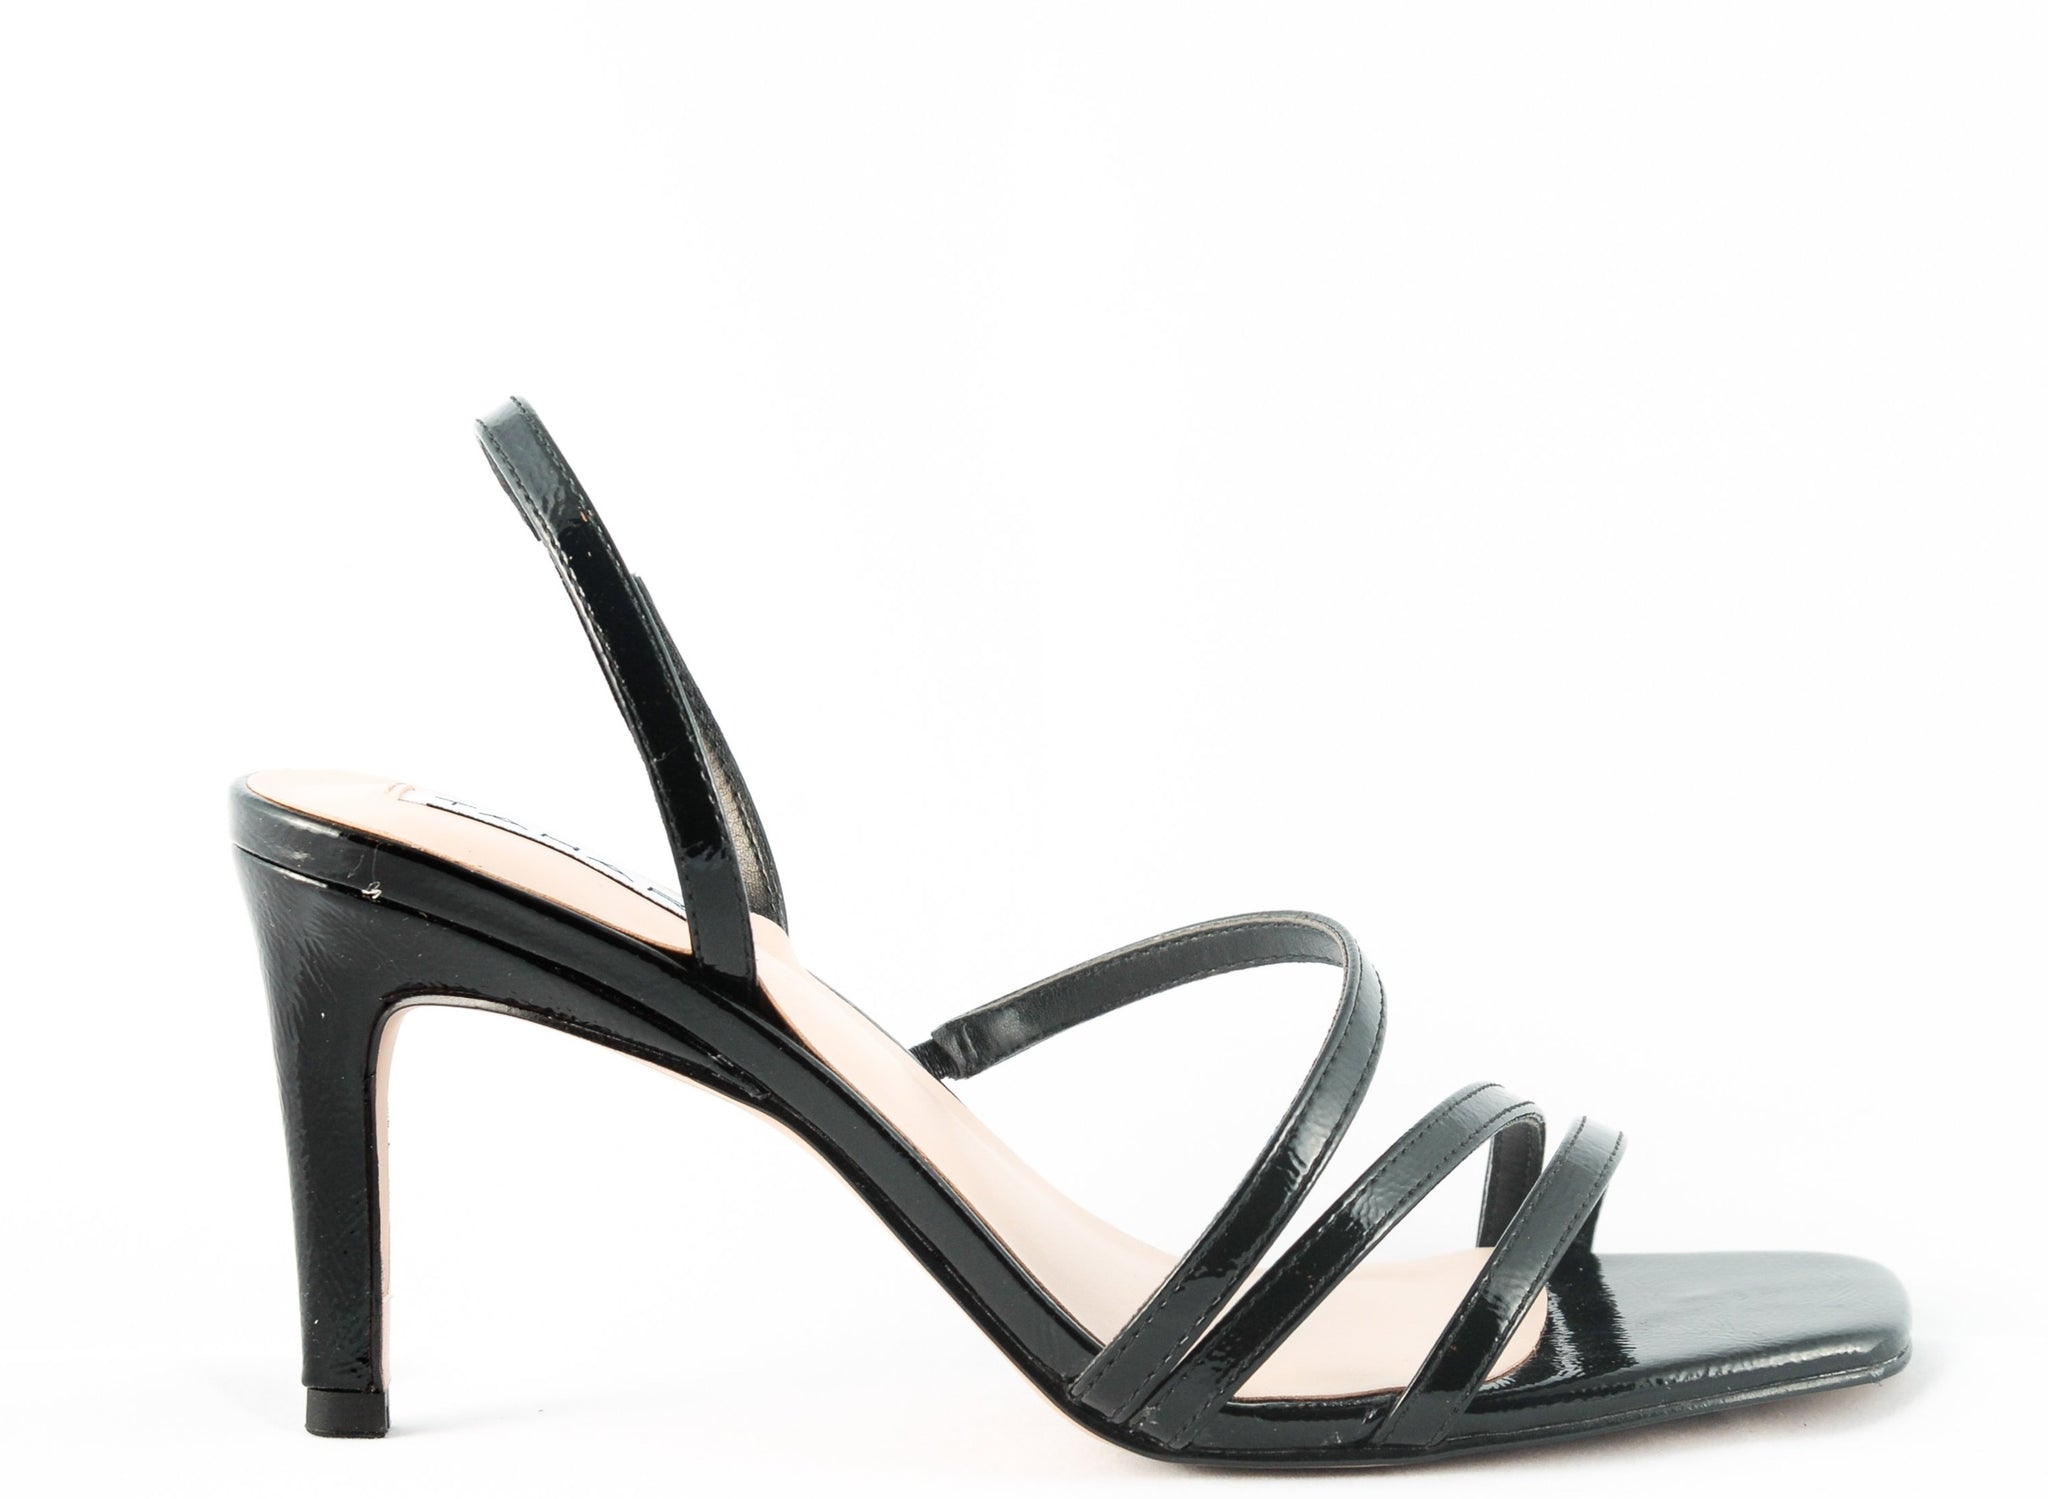 When you know you're that girl, the Dannika heel is what you wear to complement that powerful feminine energy! A simple yet effective, strappy, mid stiletto, flat head heel. In New Orleans at Shoe Be Do.